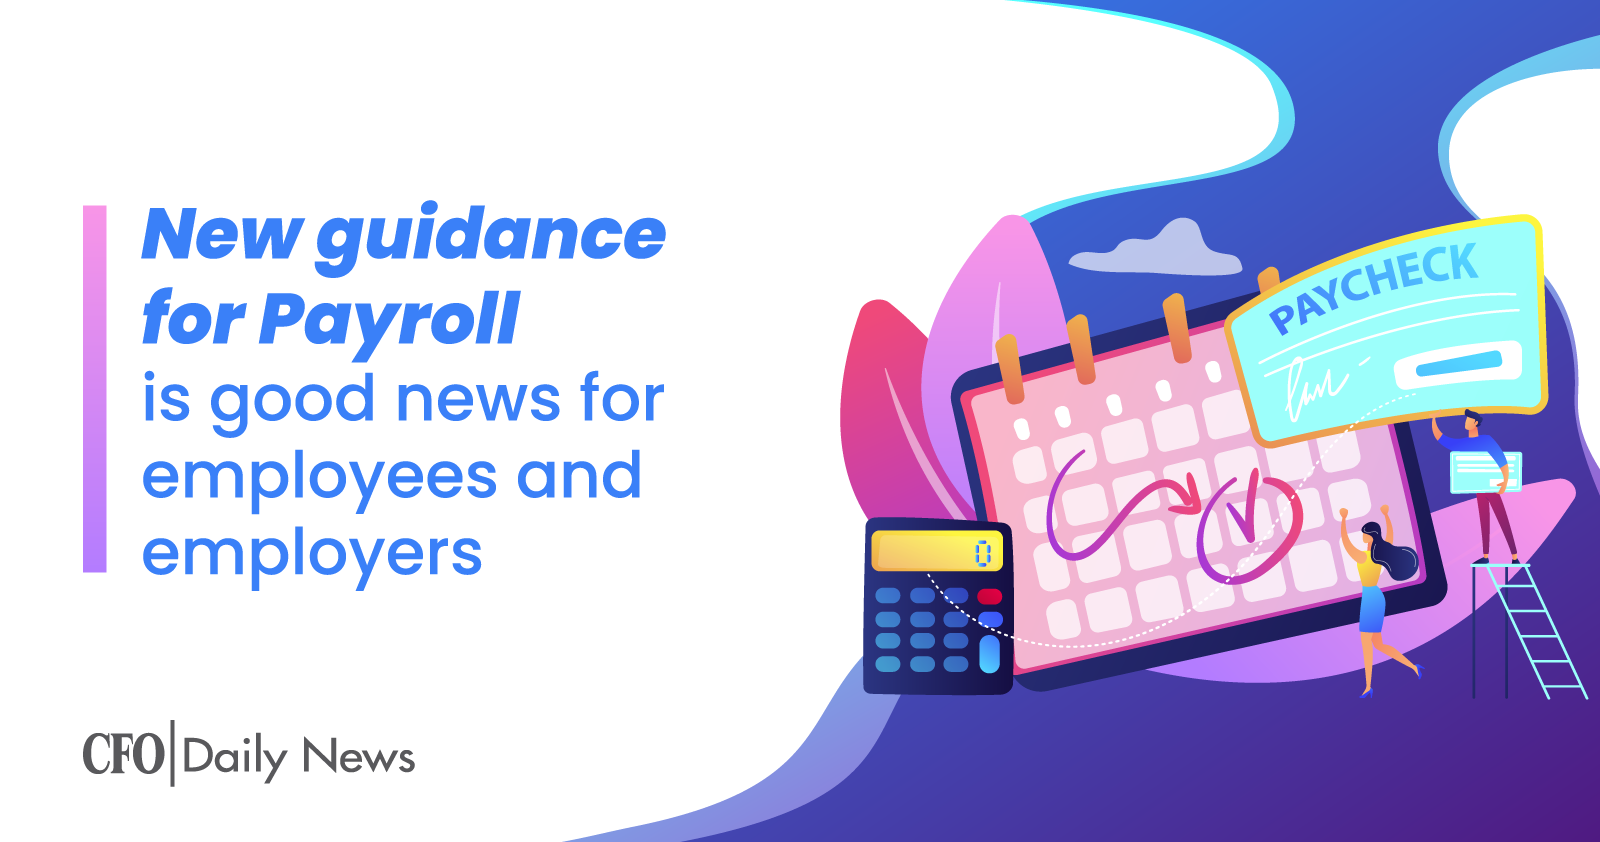 new guidance for payroll is good news for employees and employers